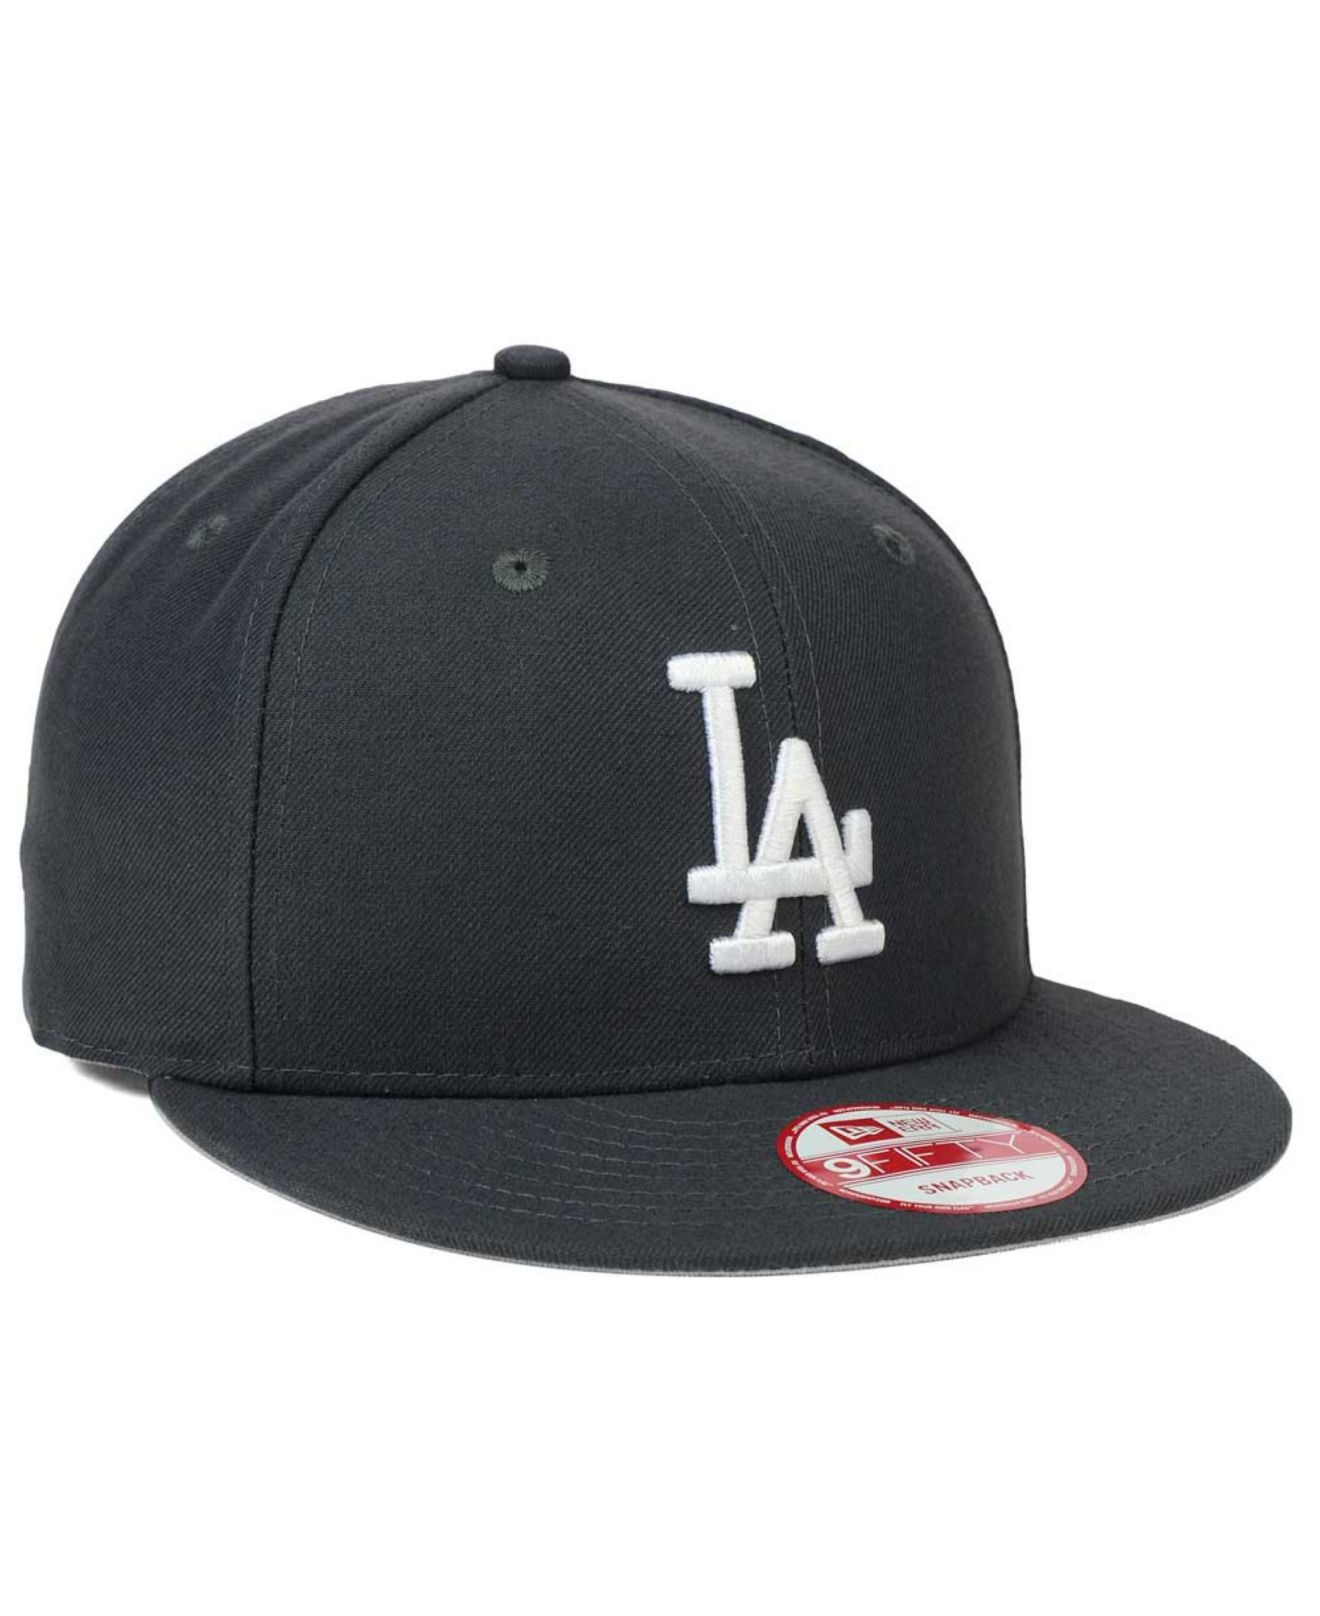 Lyst - Ktz Los Angeles Dodgers C-dub 9fifty Snapback Cap in Black for Men